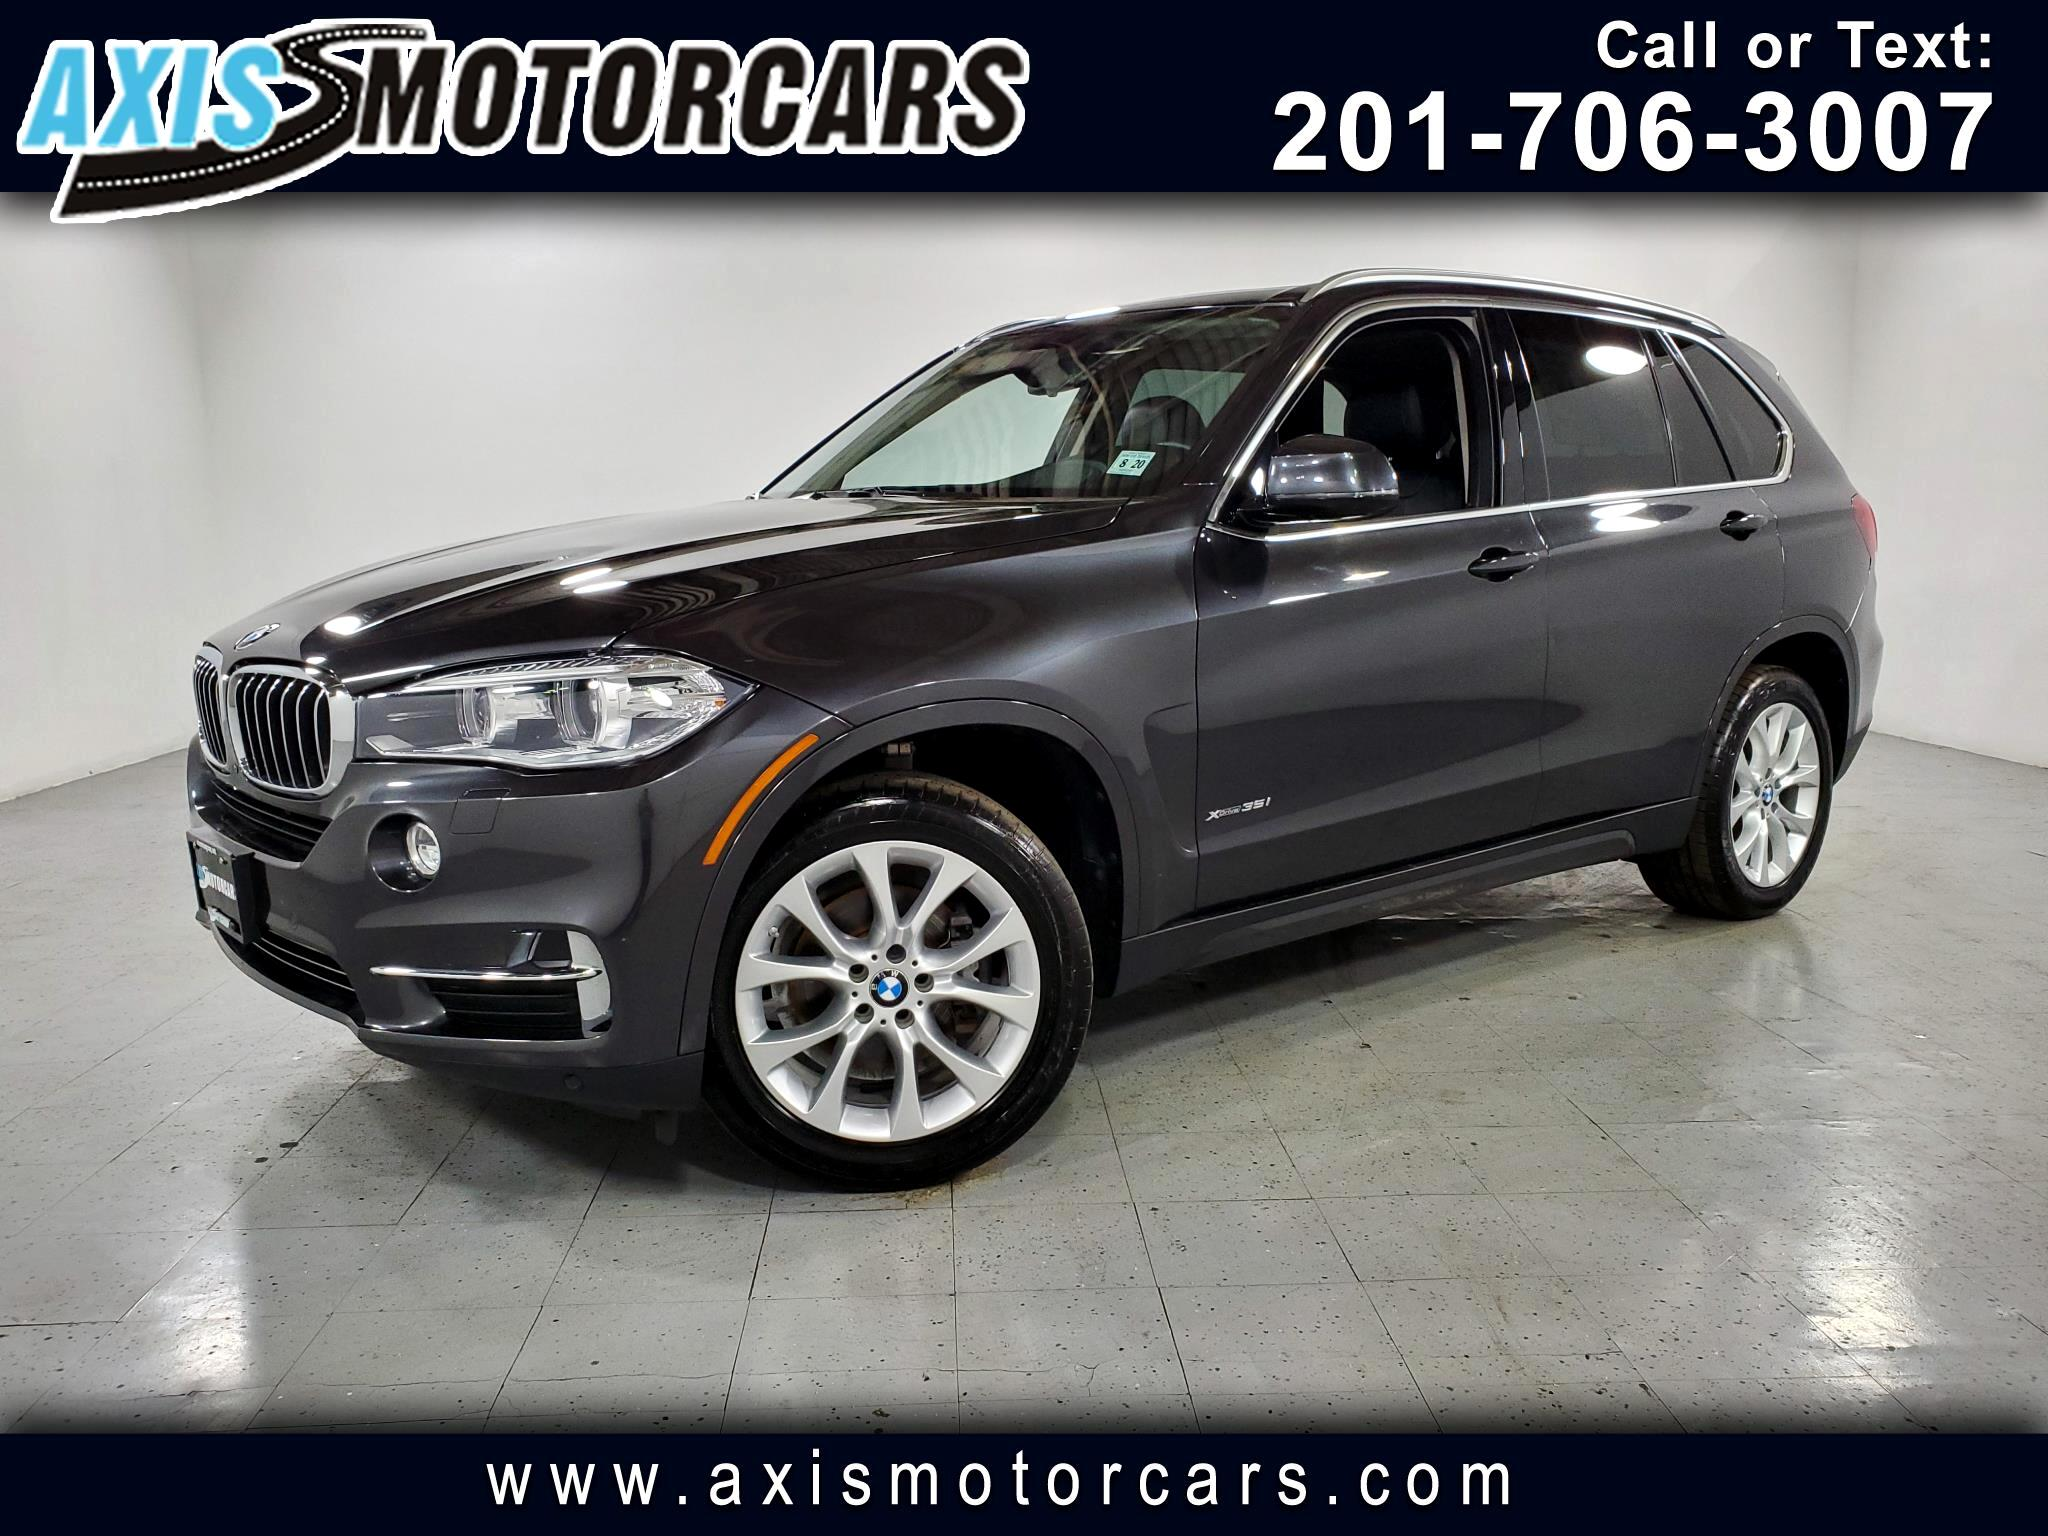 2015 BMW X5 XDrive 35i w/Premium Sound System Backup Camera Panoramic